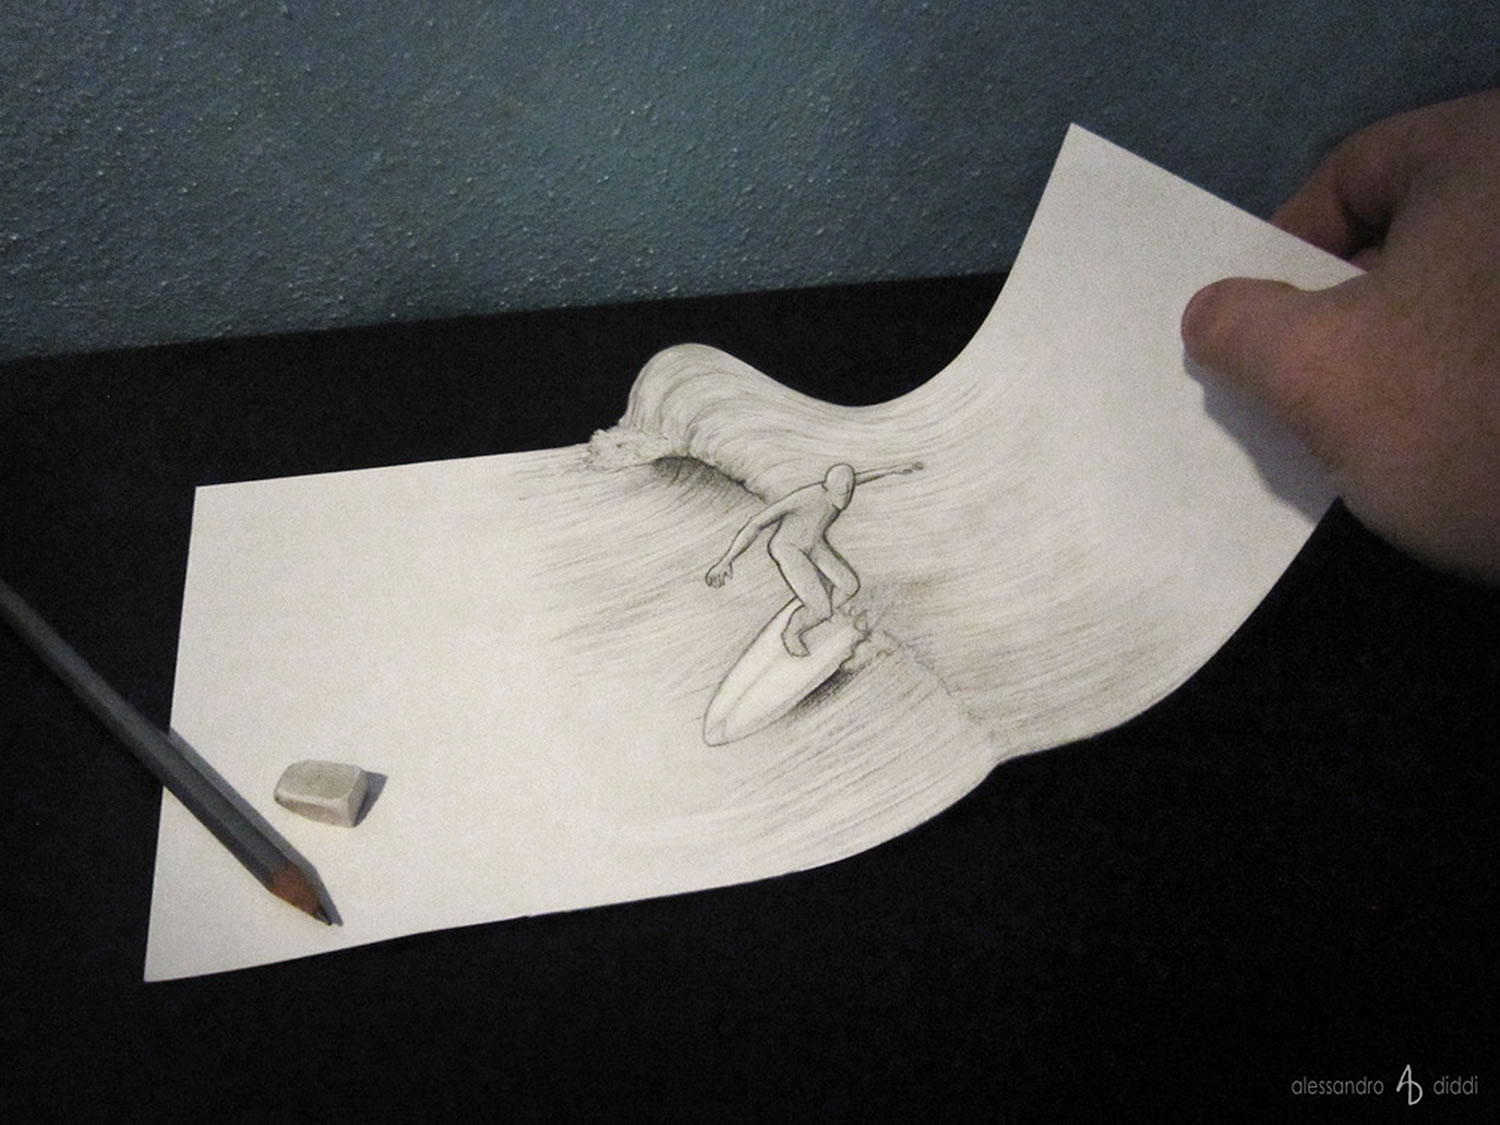 Drawn 3d art illusion Alessandro Illusion diddi 3D by